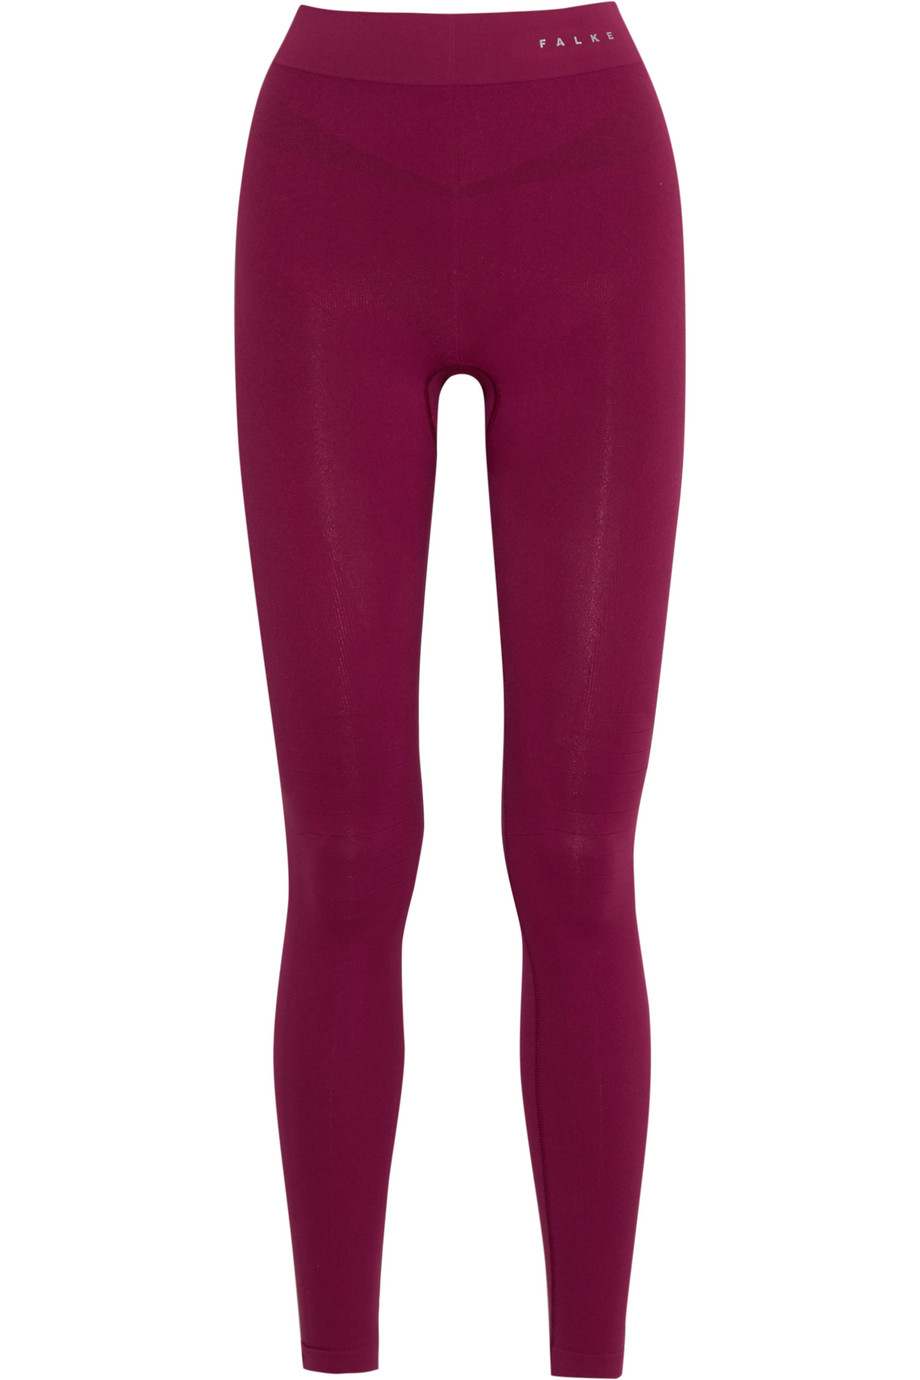 Stretch-Jersey Leggings, FALKE Ergonomic Sport System, Plum, Women's